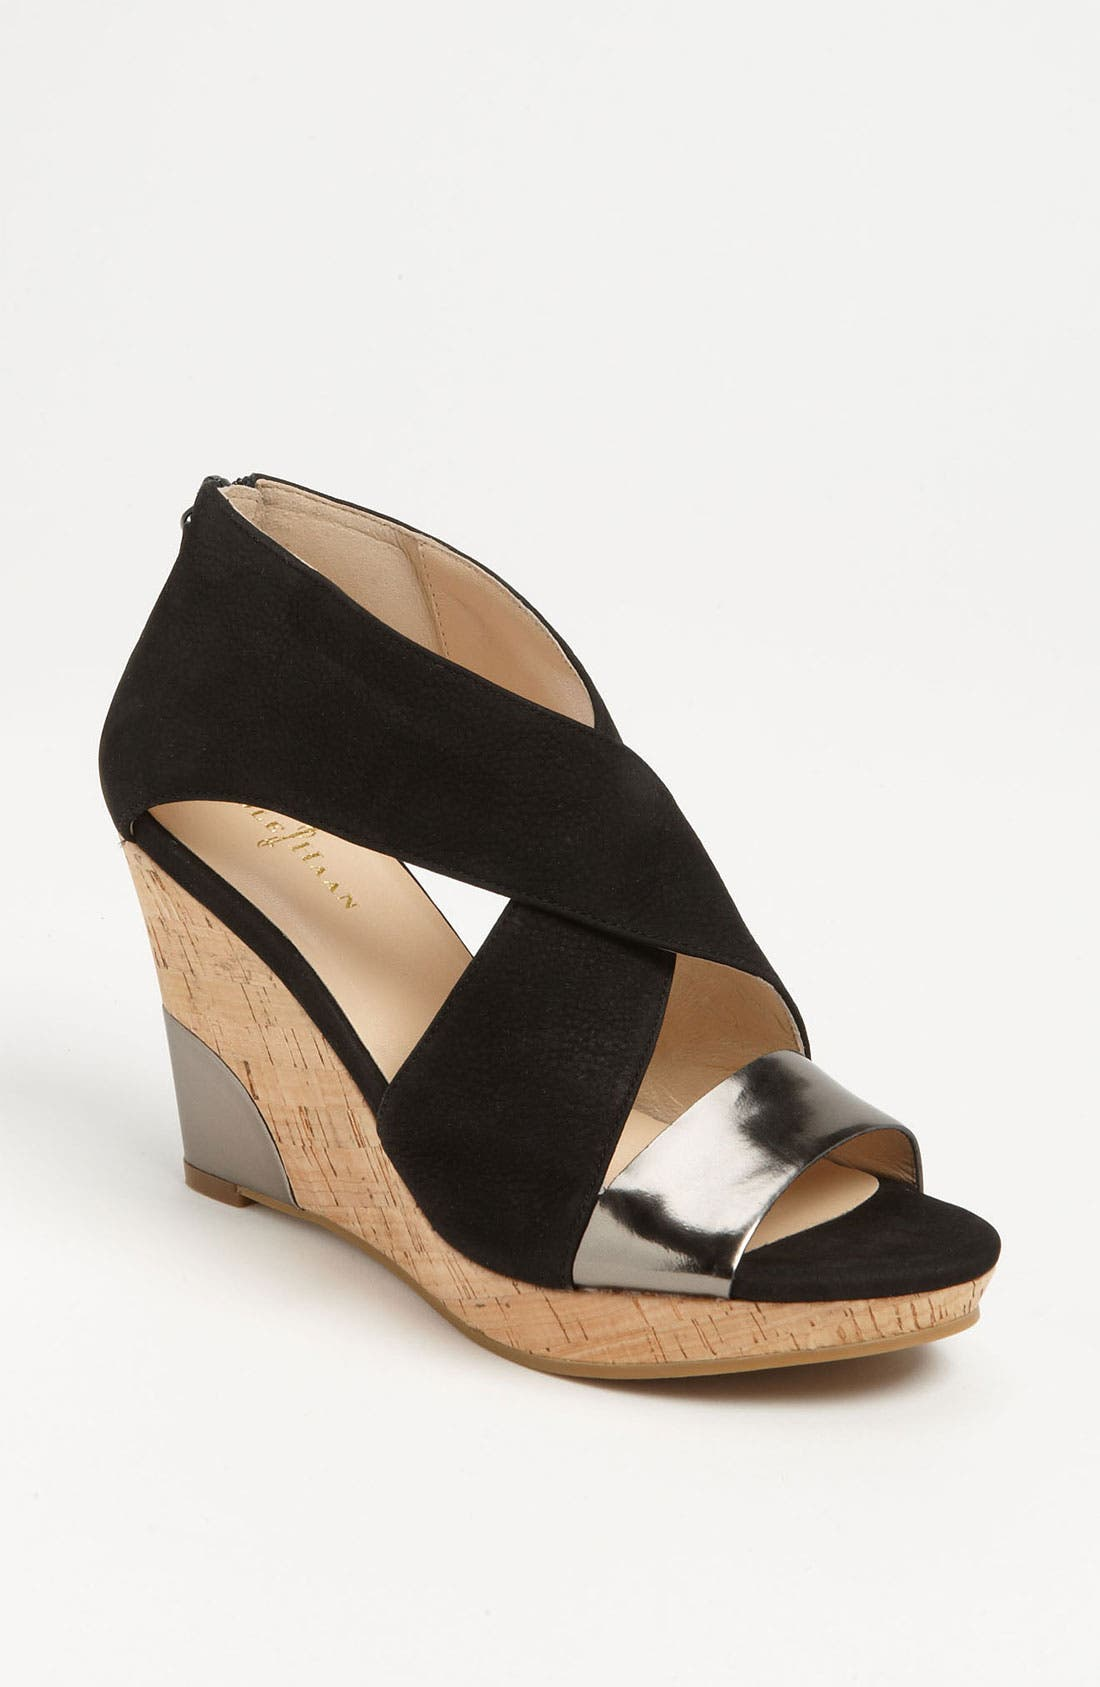 COLE HAAN 'Air Irving' Wedge Sandal, Main, color, 001